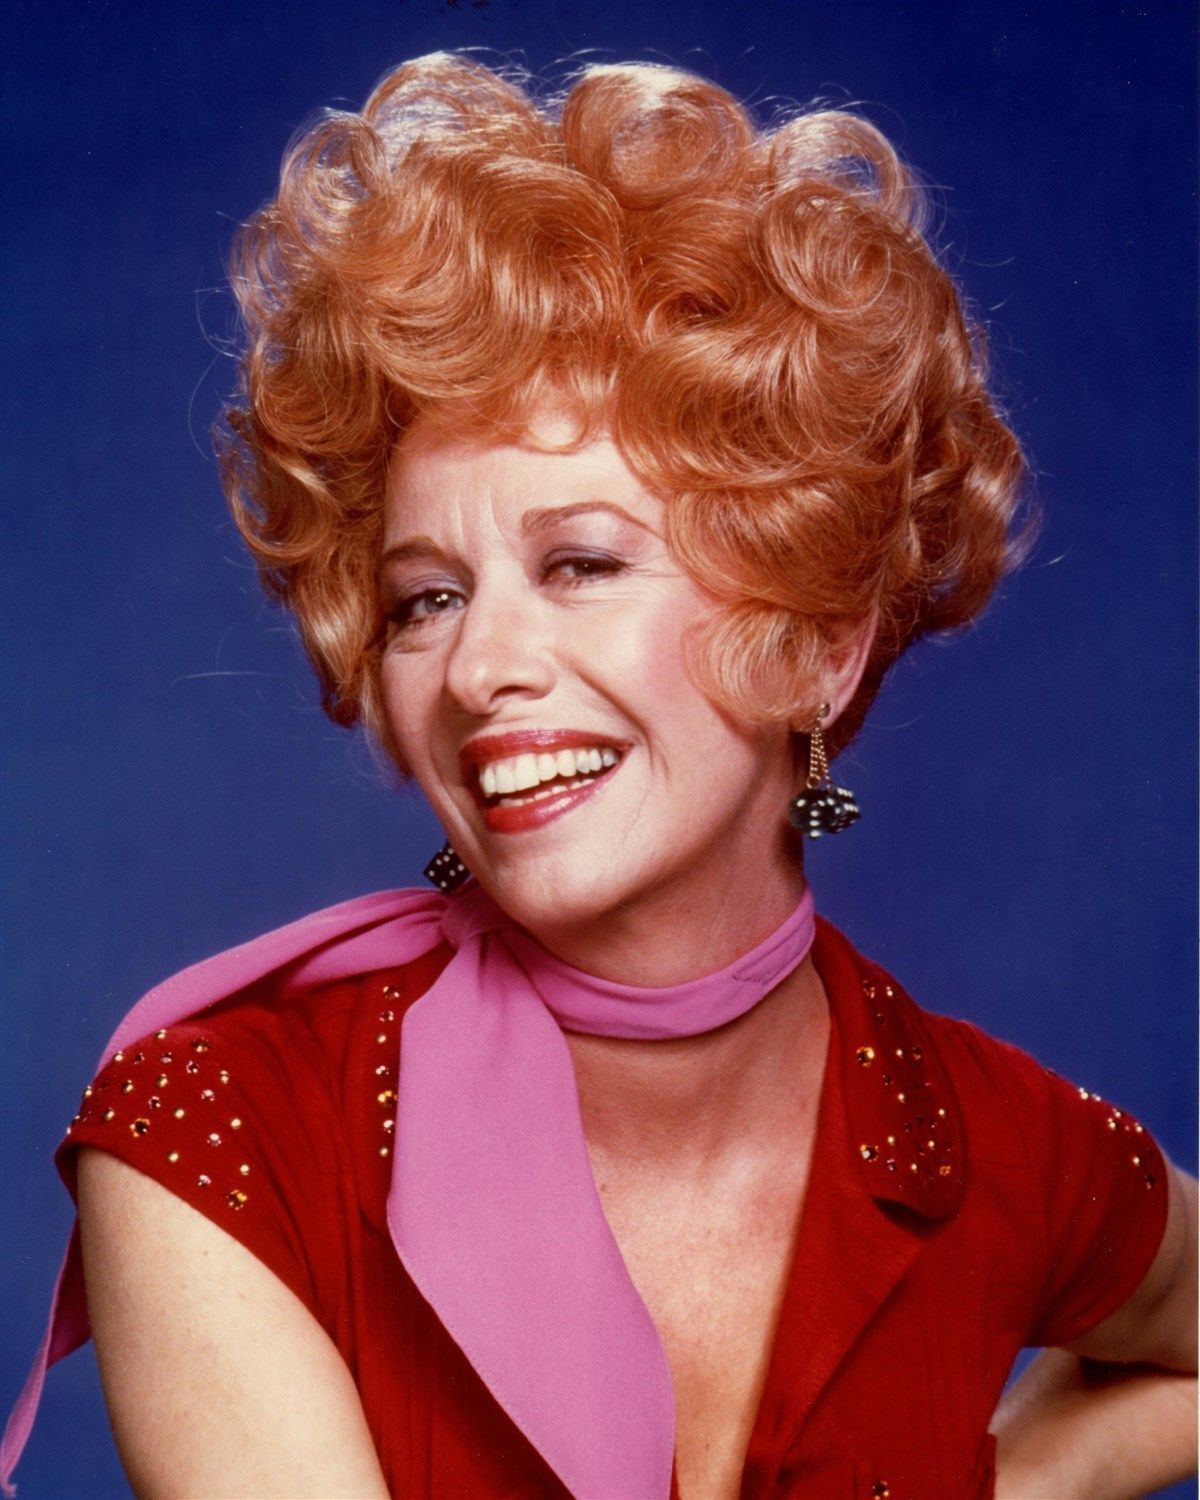 polly holliday husbandpolly holliday married, polly holliday sitcom, polly holliday net worth, polly holliday 2016, polly holliday age, polly holliday movies, polly holliday husband, polly holliday imdb, polly holliday gremlins, polly holliday today, polly holliday bio, polly holliday young, polly holliday on reba, polly holliday now, polly holliday interview, polly holliday scholarship, polly holliday as flo, polly holliday movies and tv shows, polly holliday blind, polly holliday match game